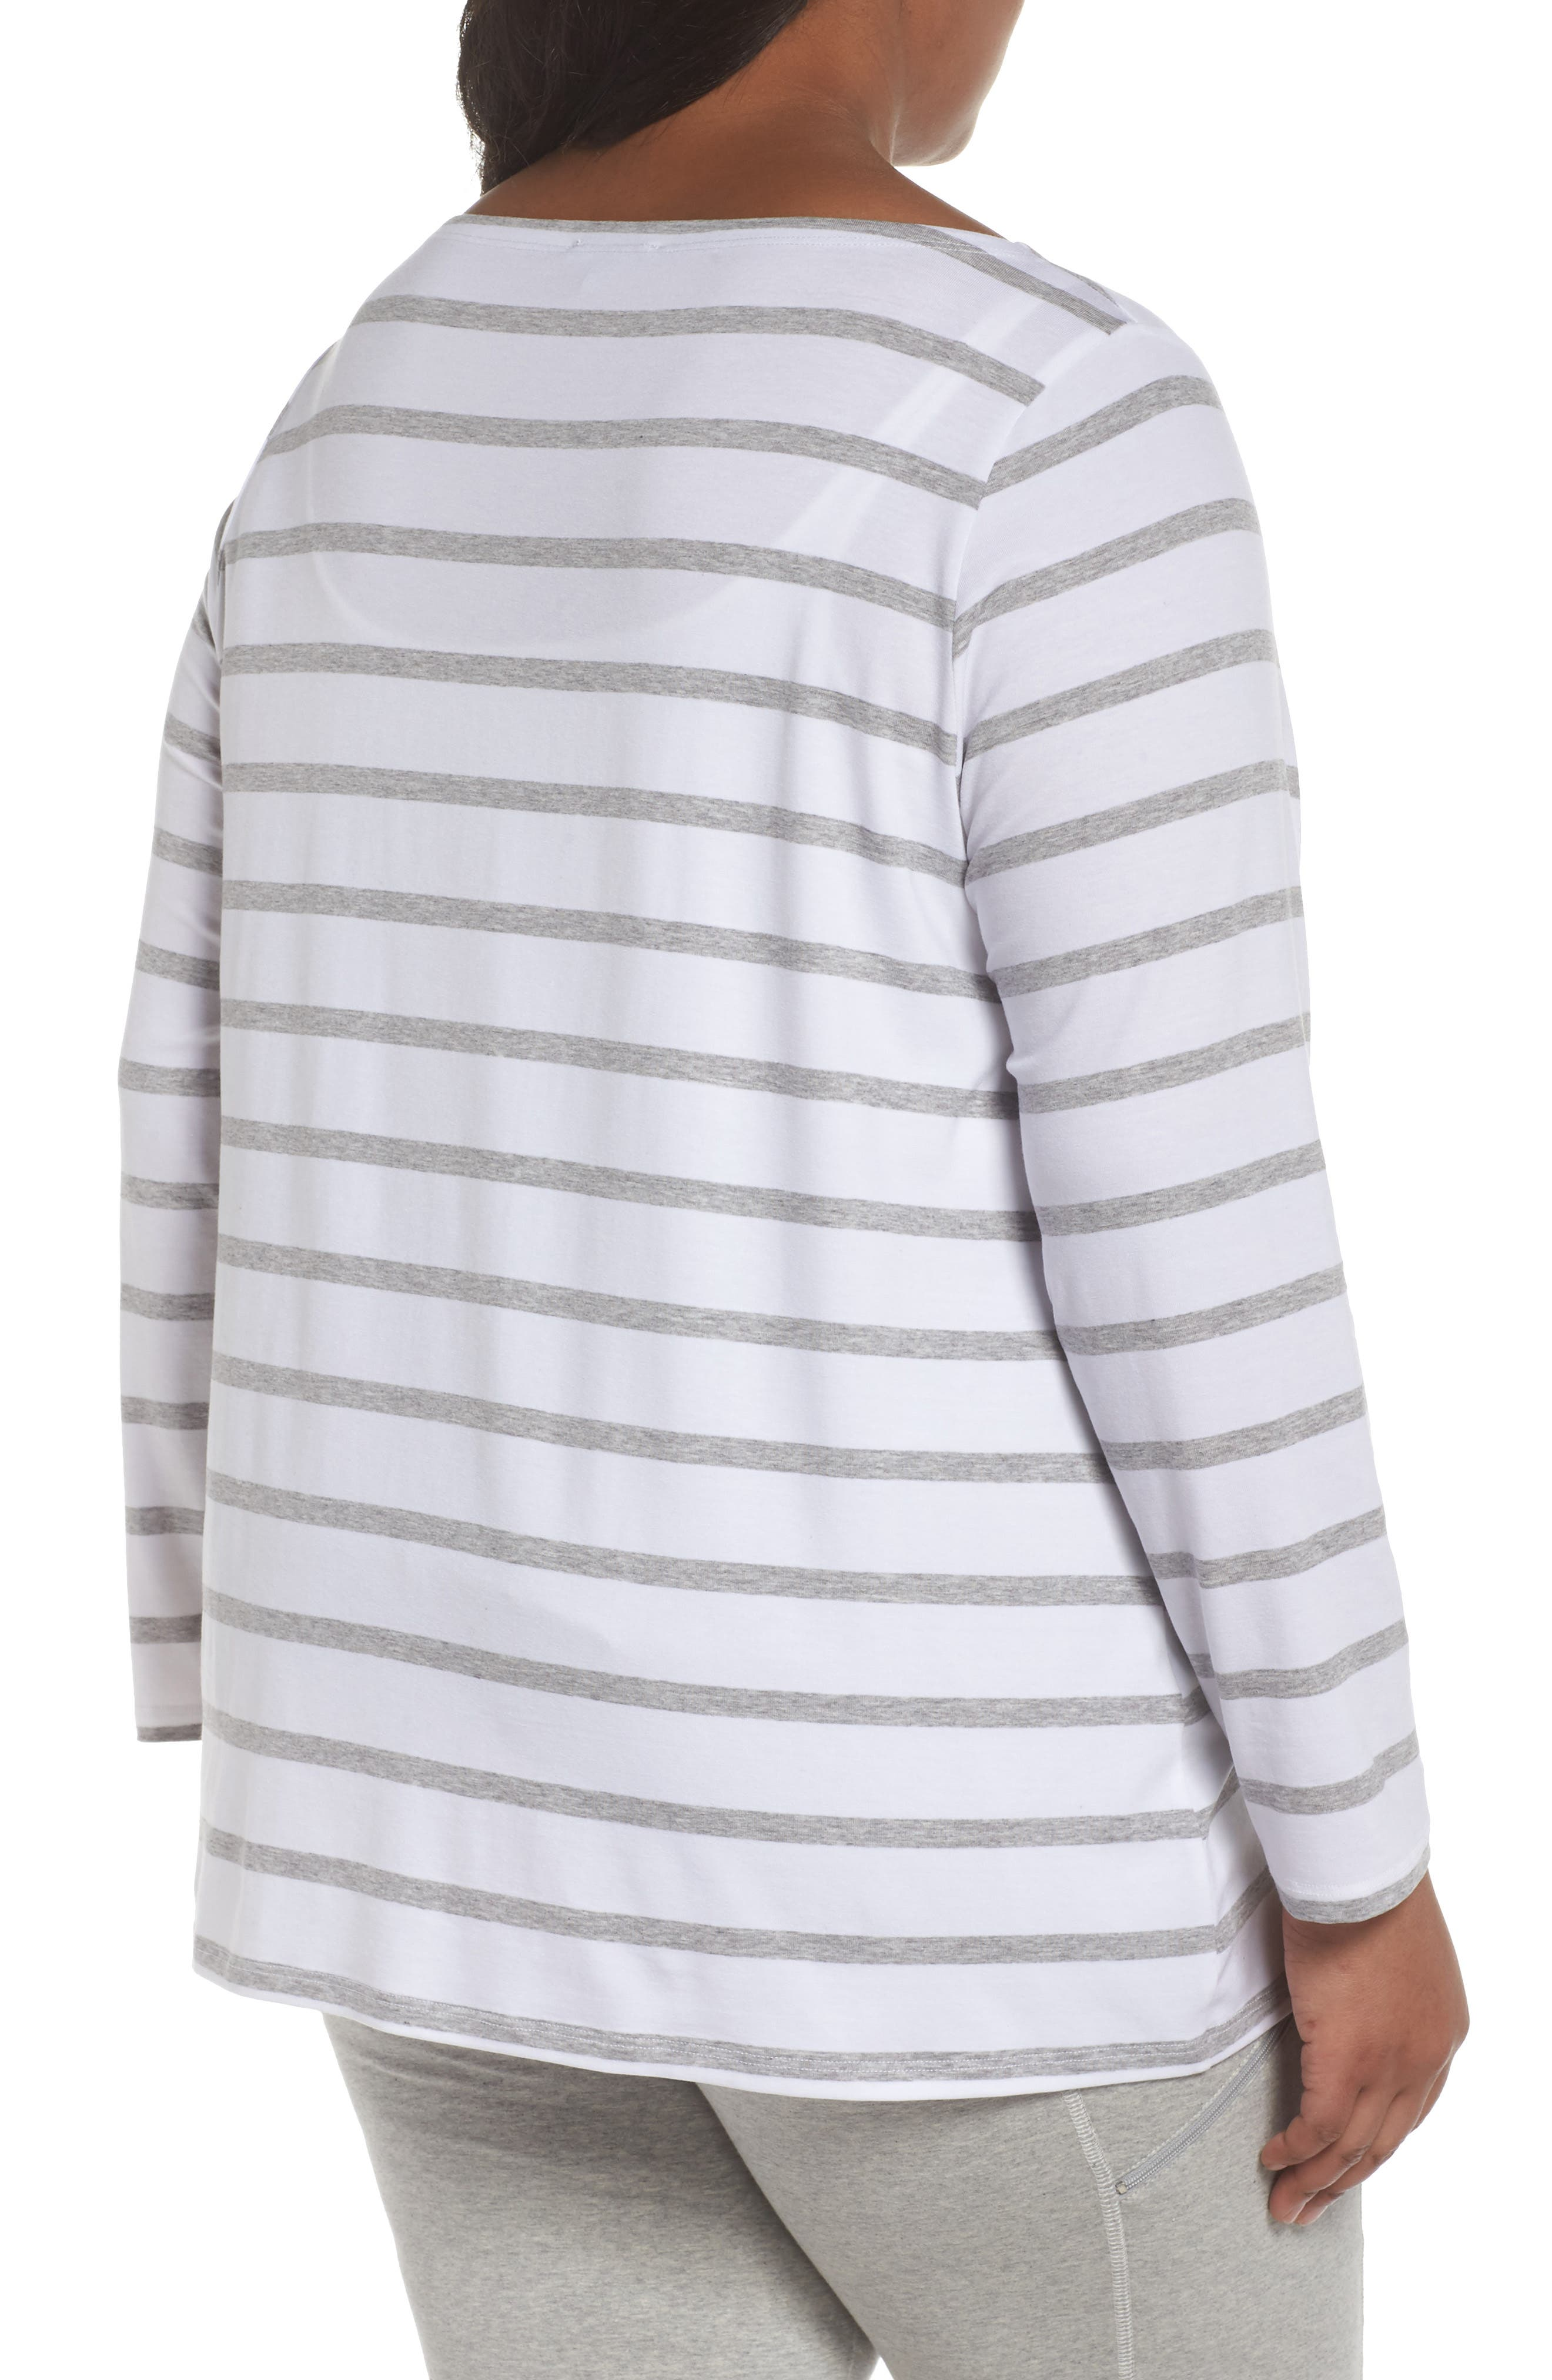 Stripe Stretch Tencel<sup>®</sup> Lyocell Top,                             Alternate thumbnail 2, color,                             131